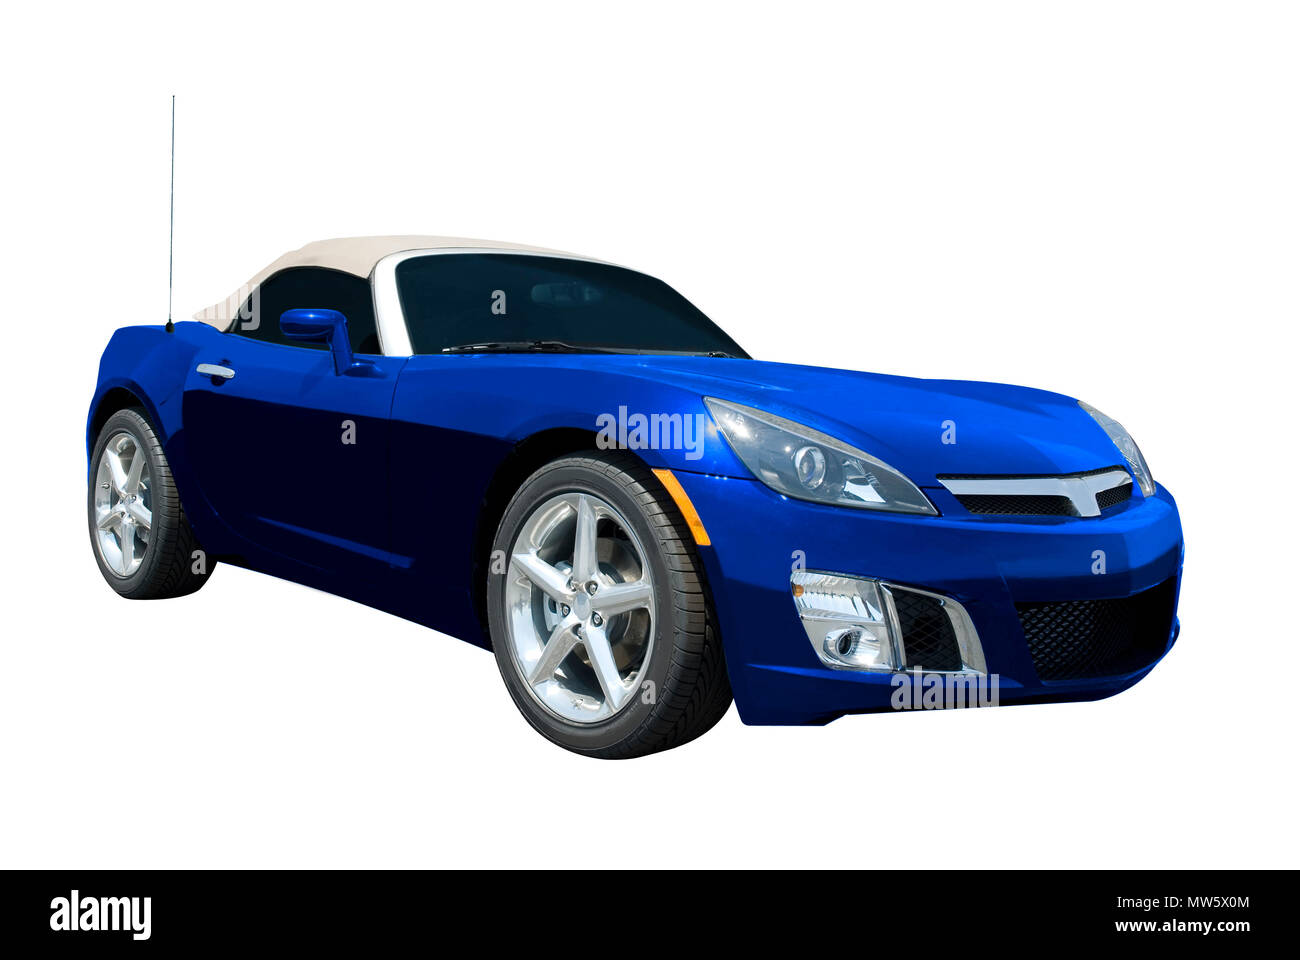 Blue convertible sports car roadster  isolated on a white background.  Look in my gallery for more car photos like this. - Stock Image